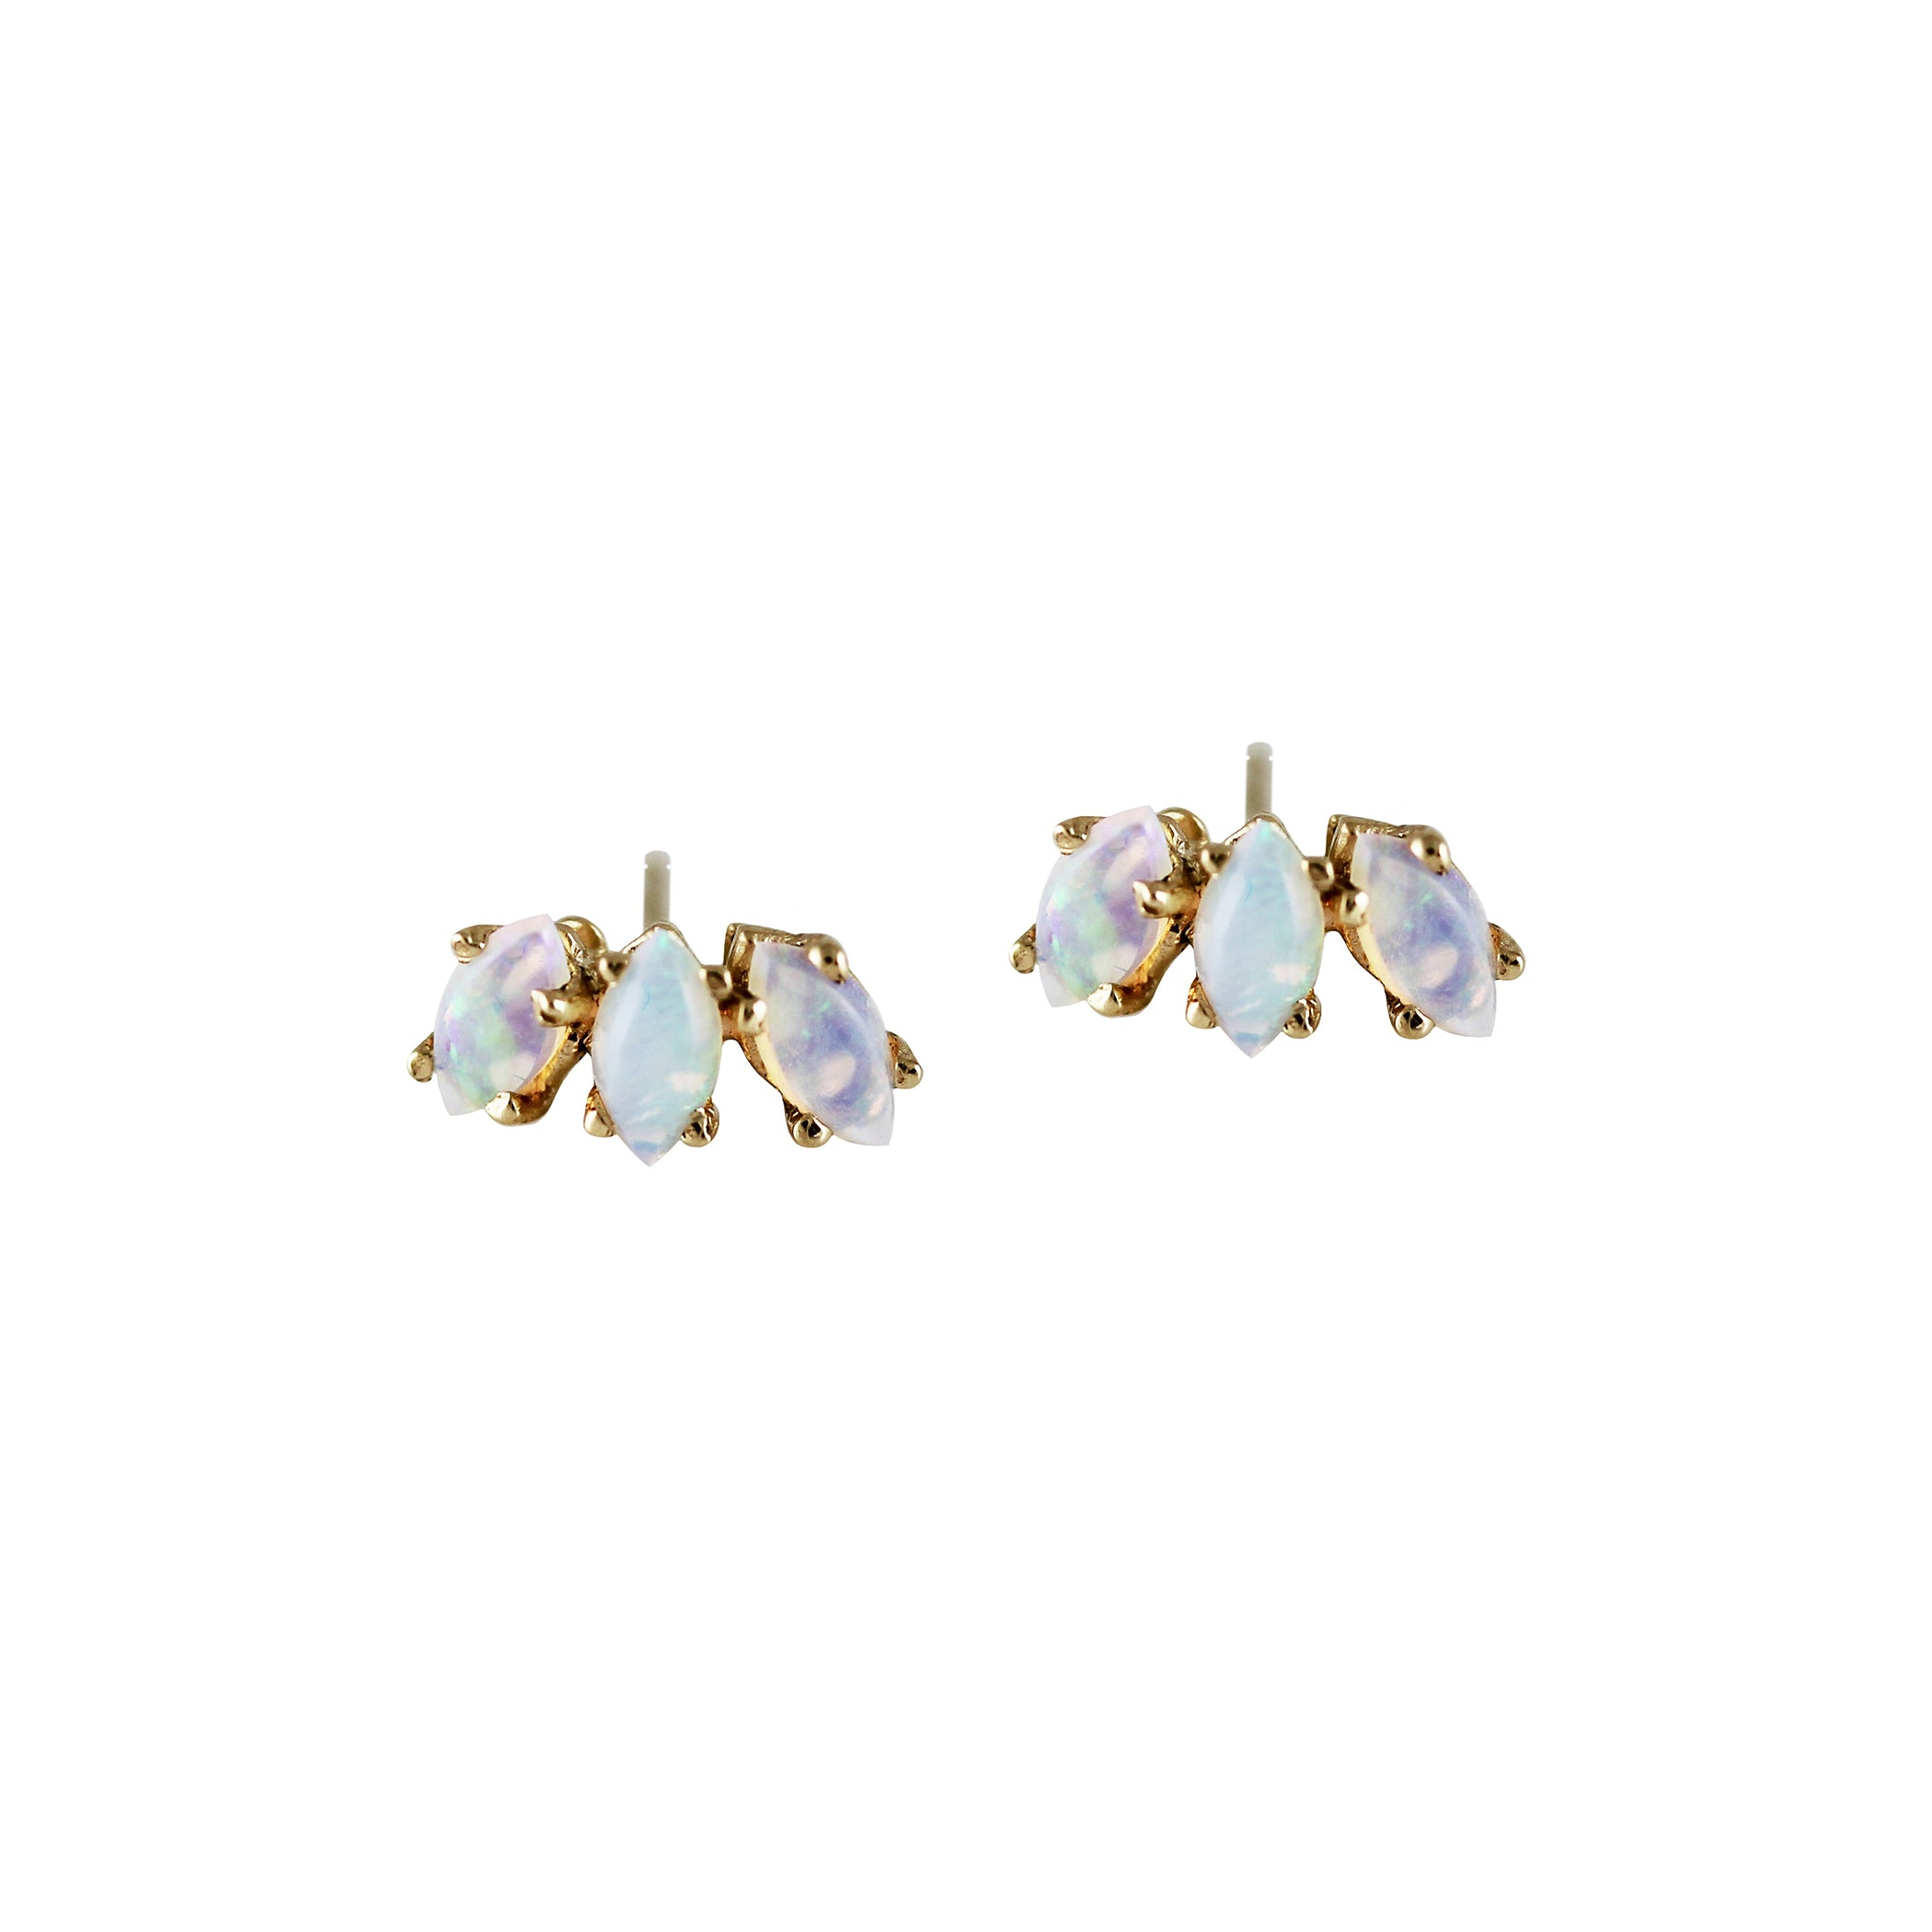 gallery earrings fede lyst metallic in stud jewelry normal marquis crystal cluster product marquise vita floating gold